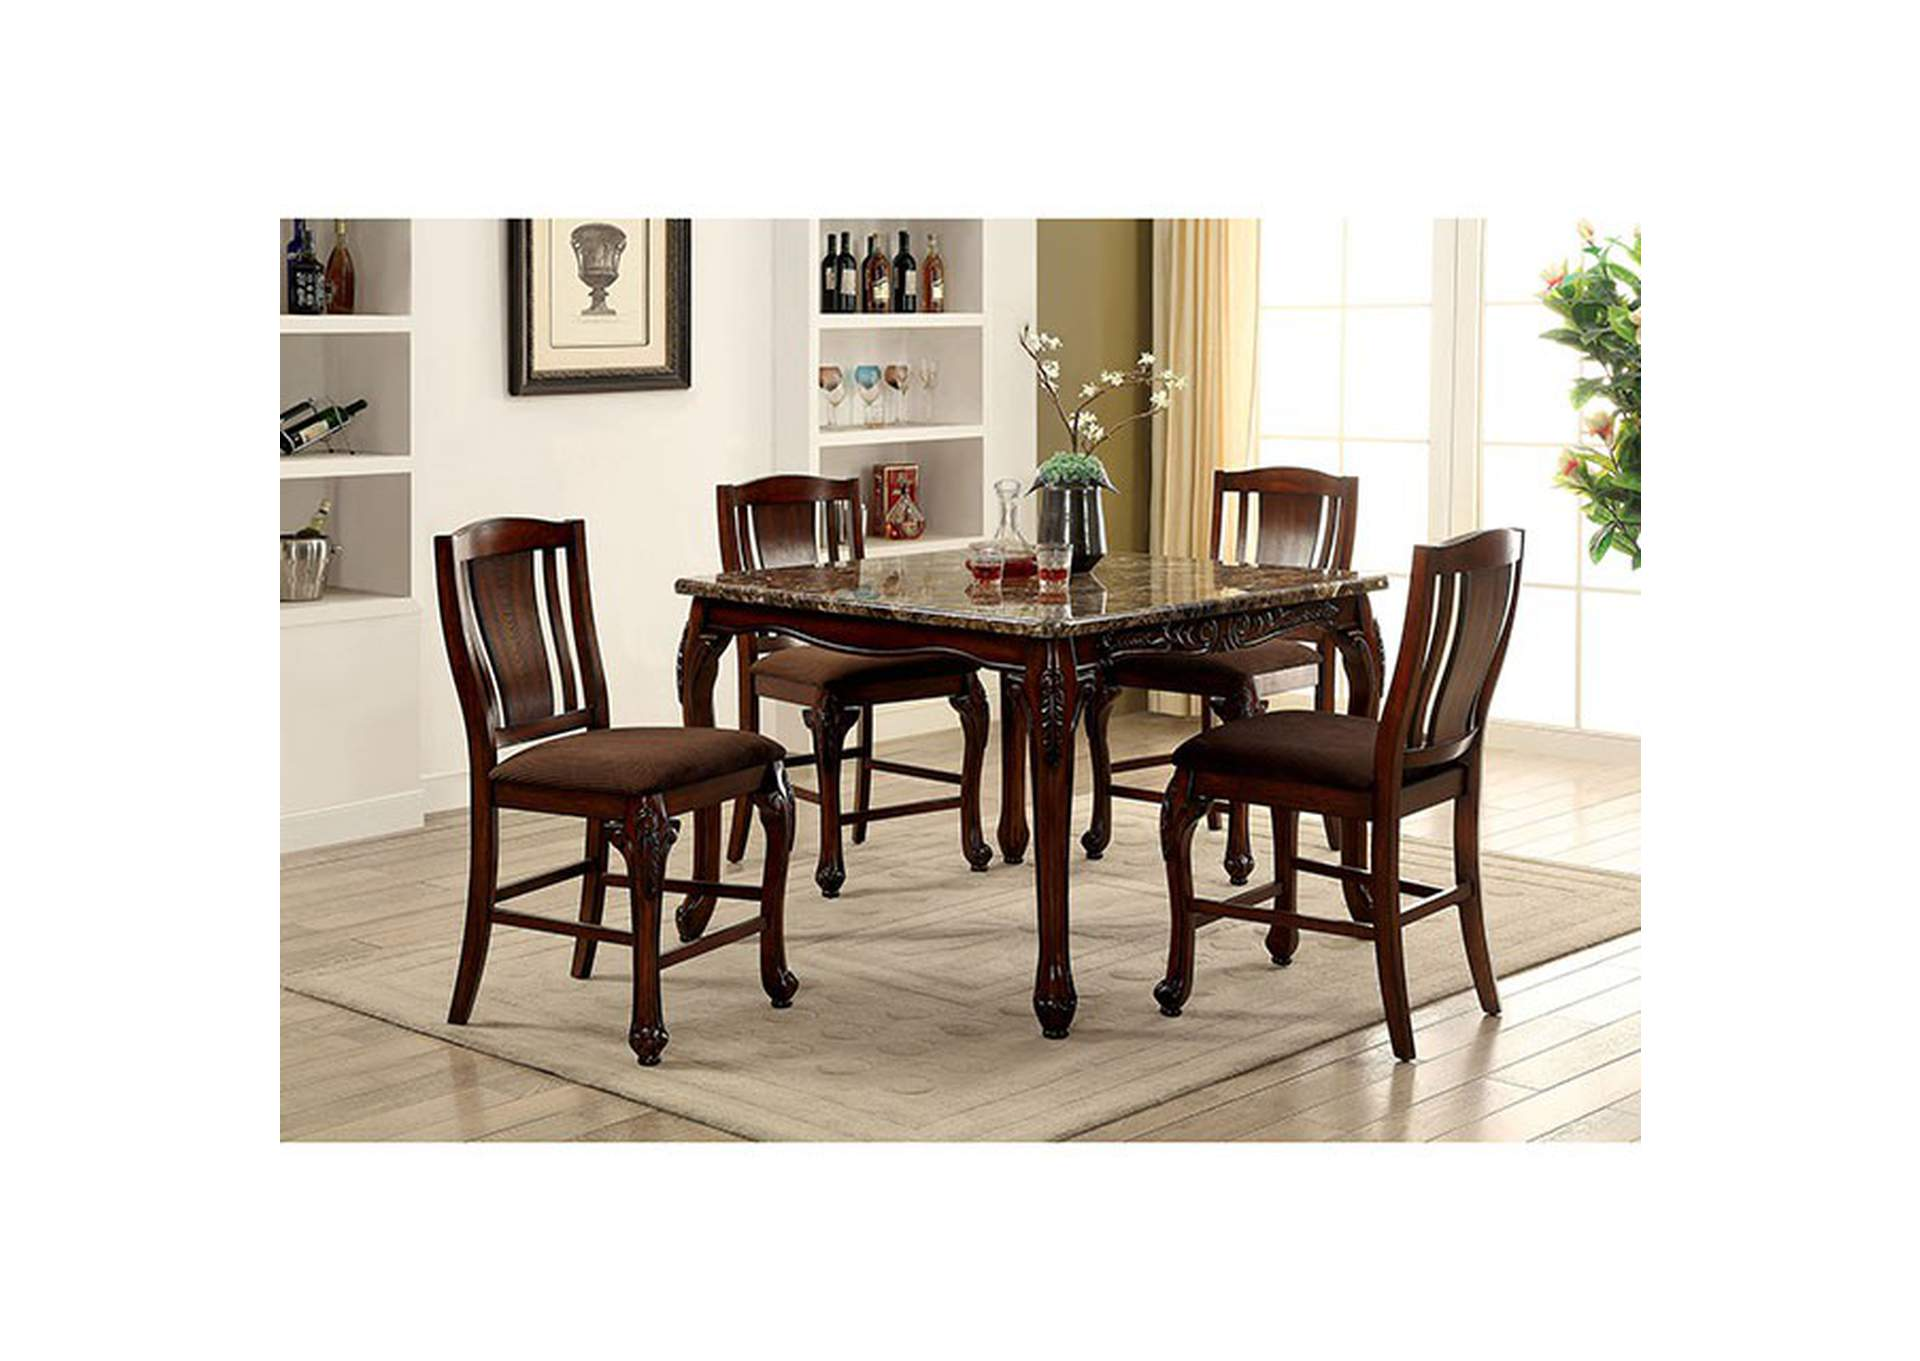 Johannesburg Brown Cherry Faux Marble Counter Height Table W 4 Chairs Furniture Of America